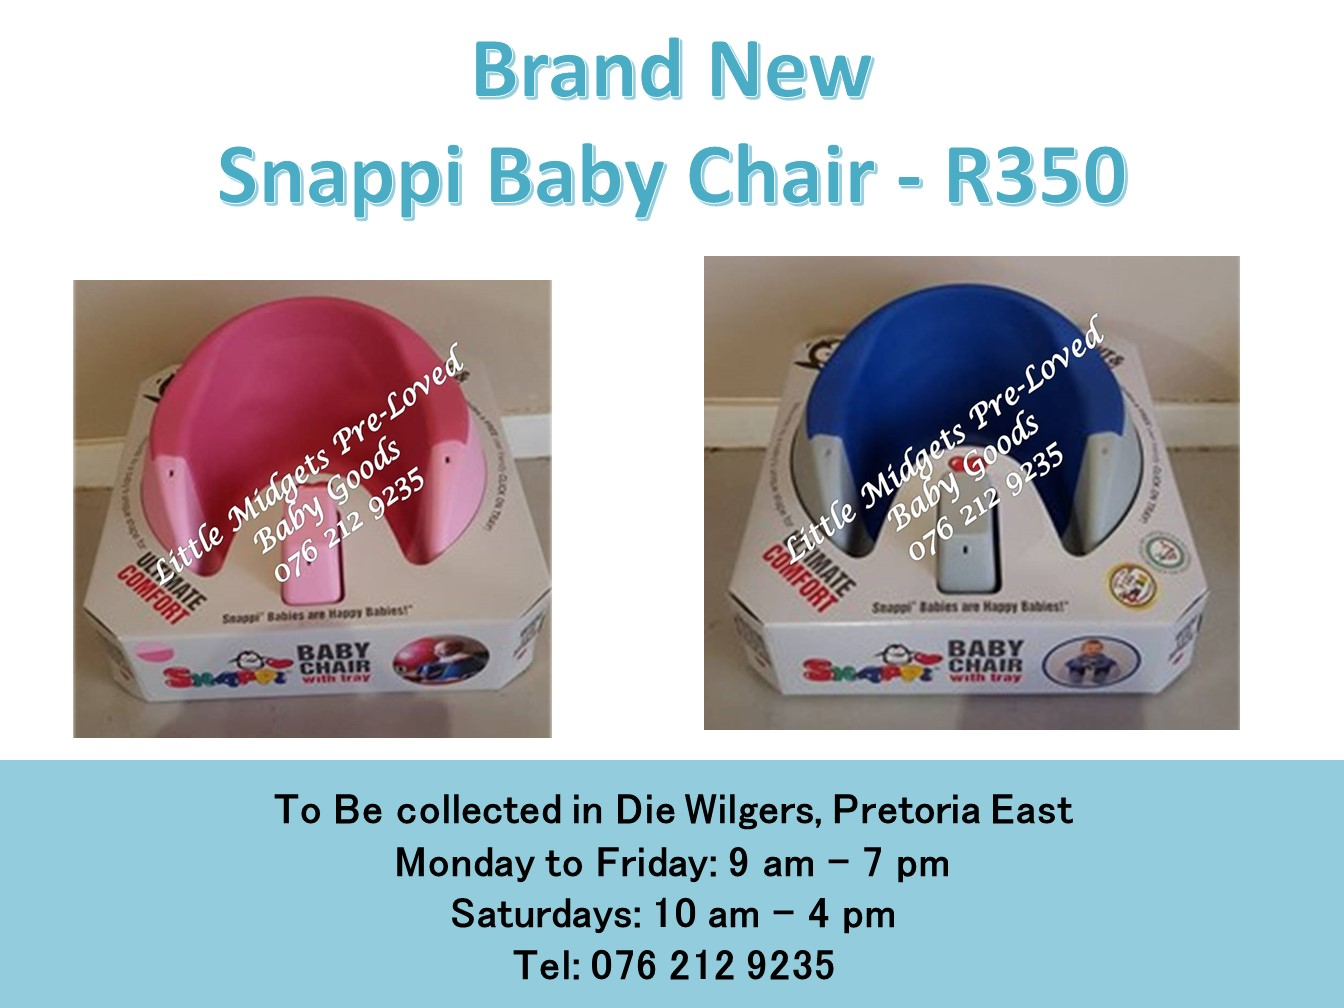 Brand New Snappi Baby Chair